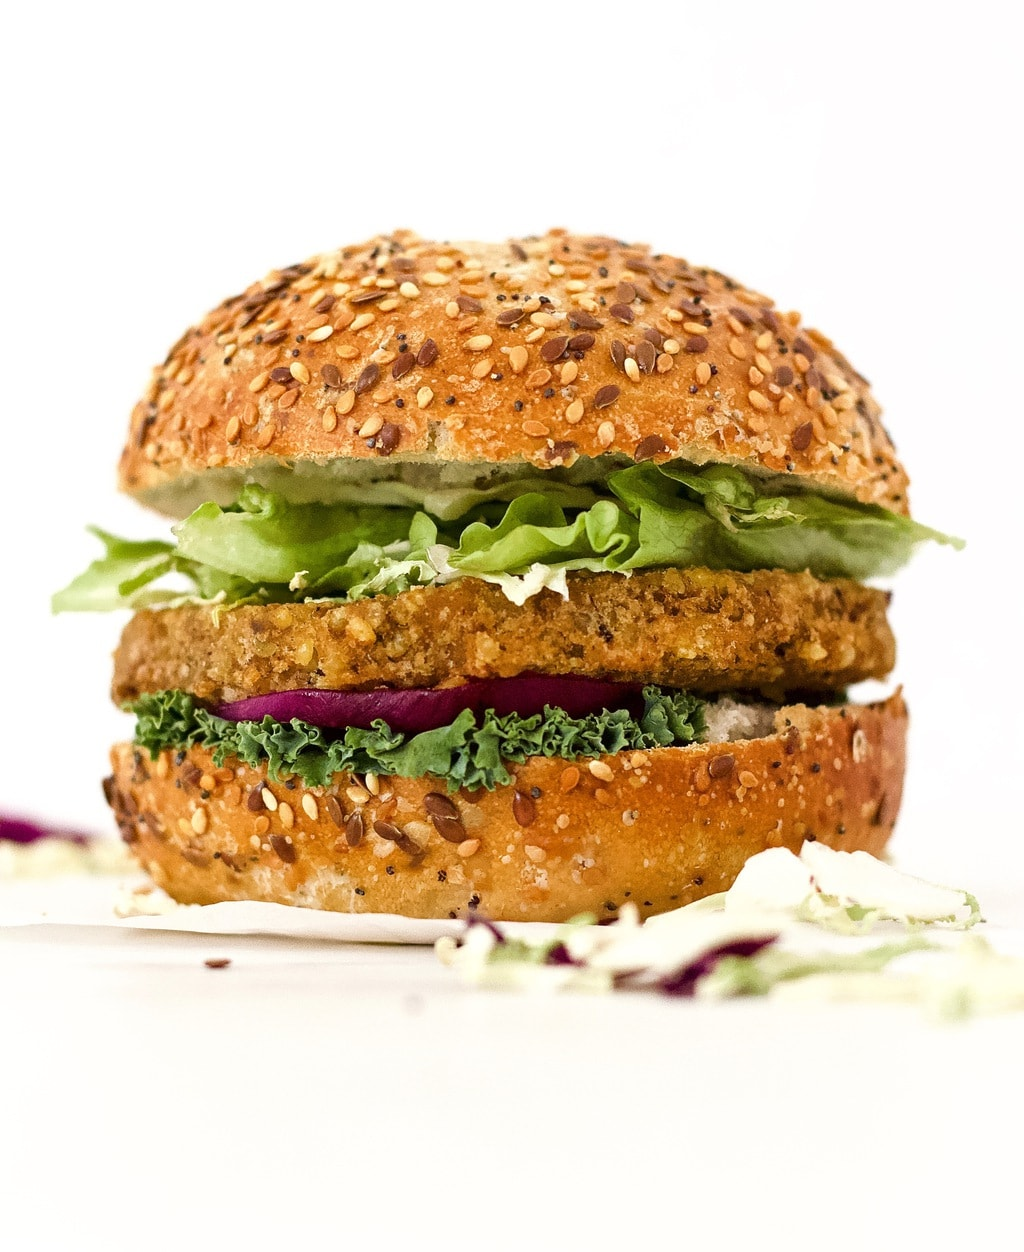 Hilary's Veggie Burgers are absolutely DELICIOUS! The perfect vegan burger that won't fall apart and will have your tastebuds screaming for more. Super easy to make, gluten-free, dairy-free, sugar-free, egg-free, and free from all common allergens.